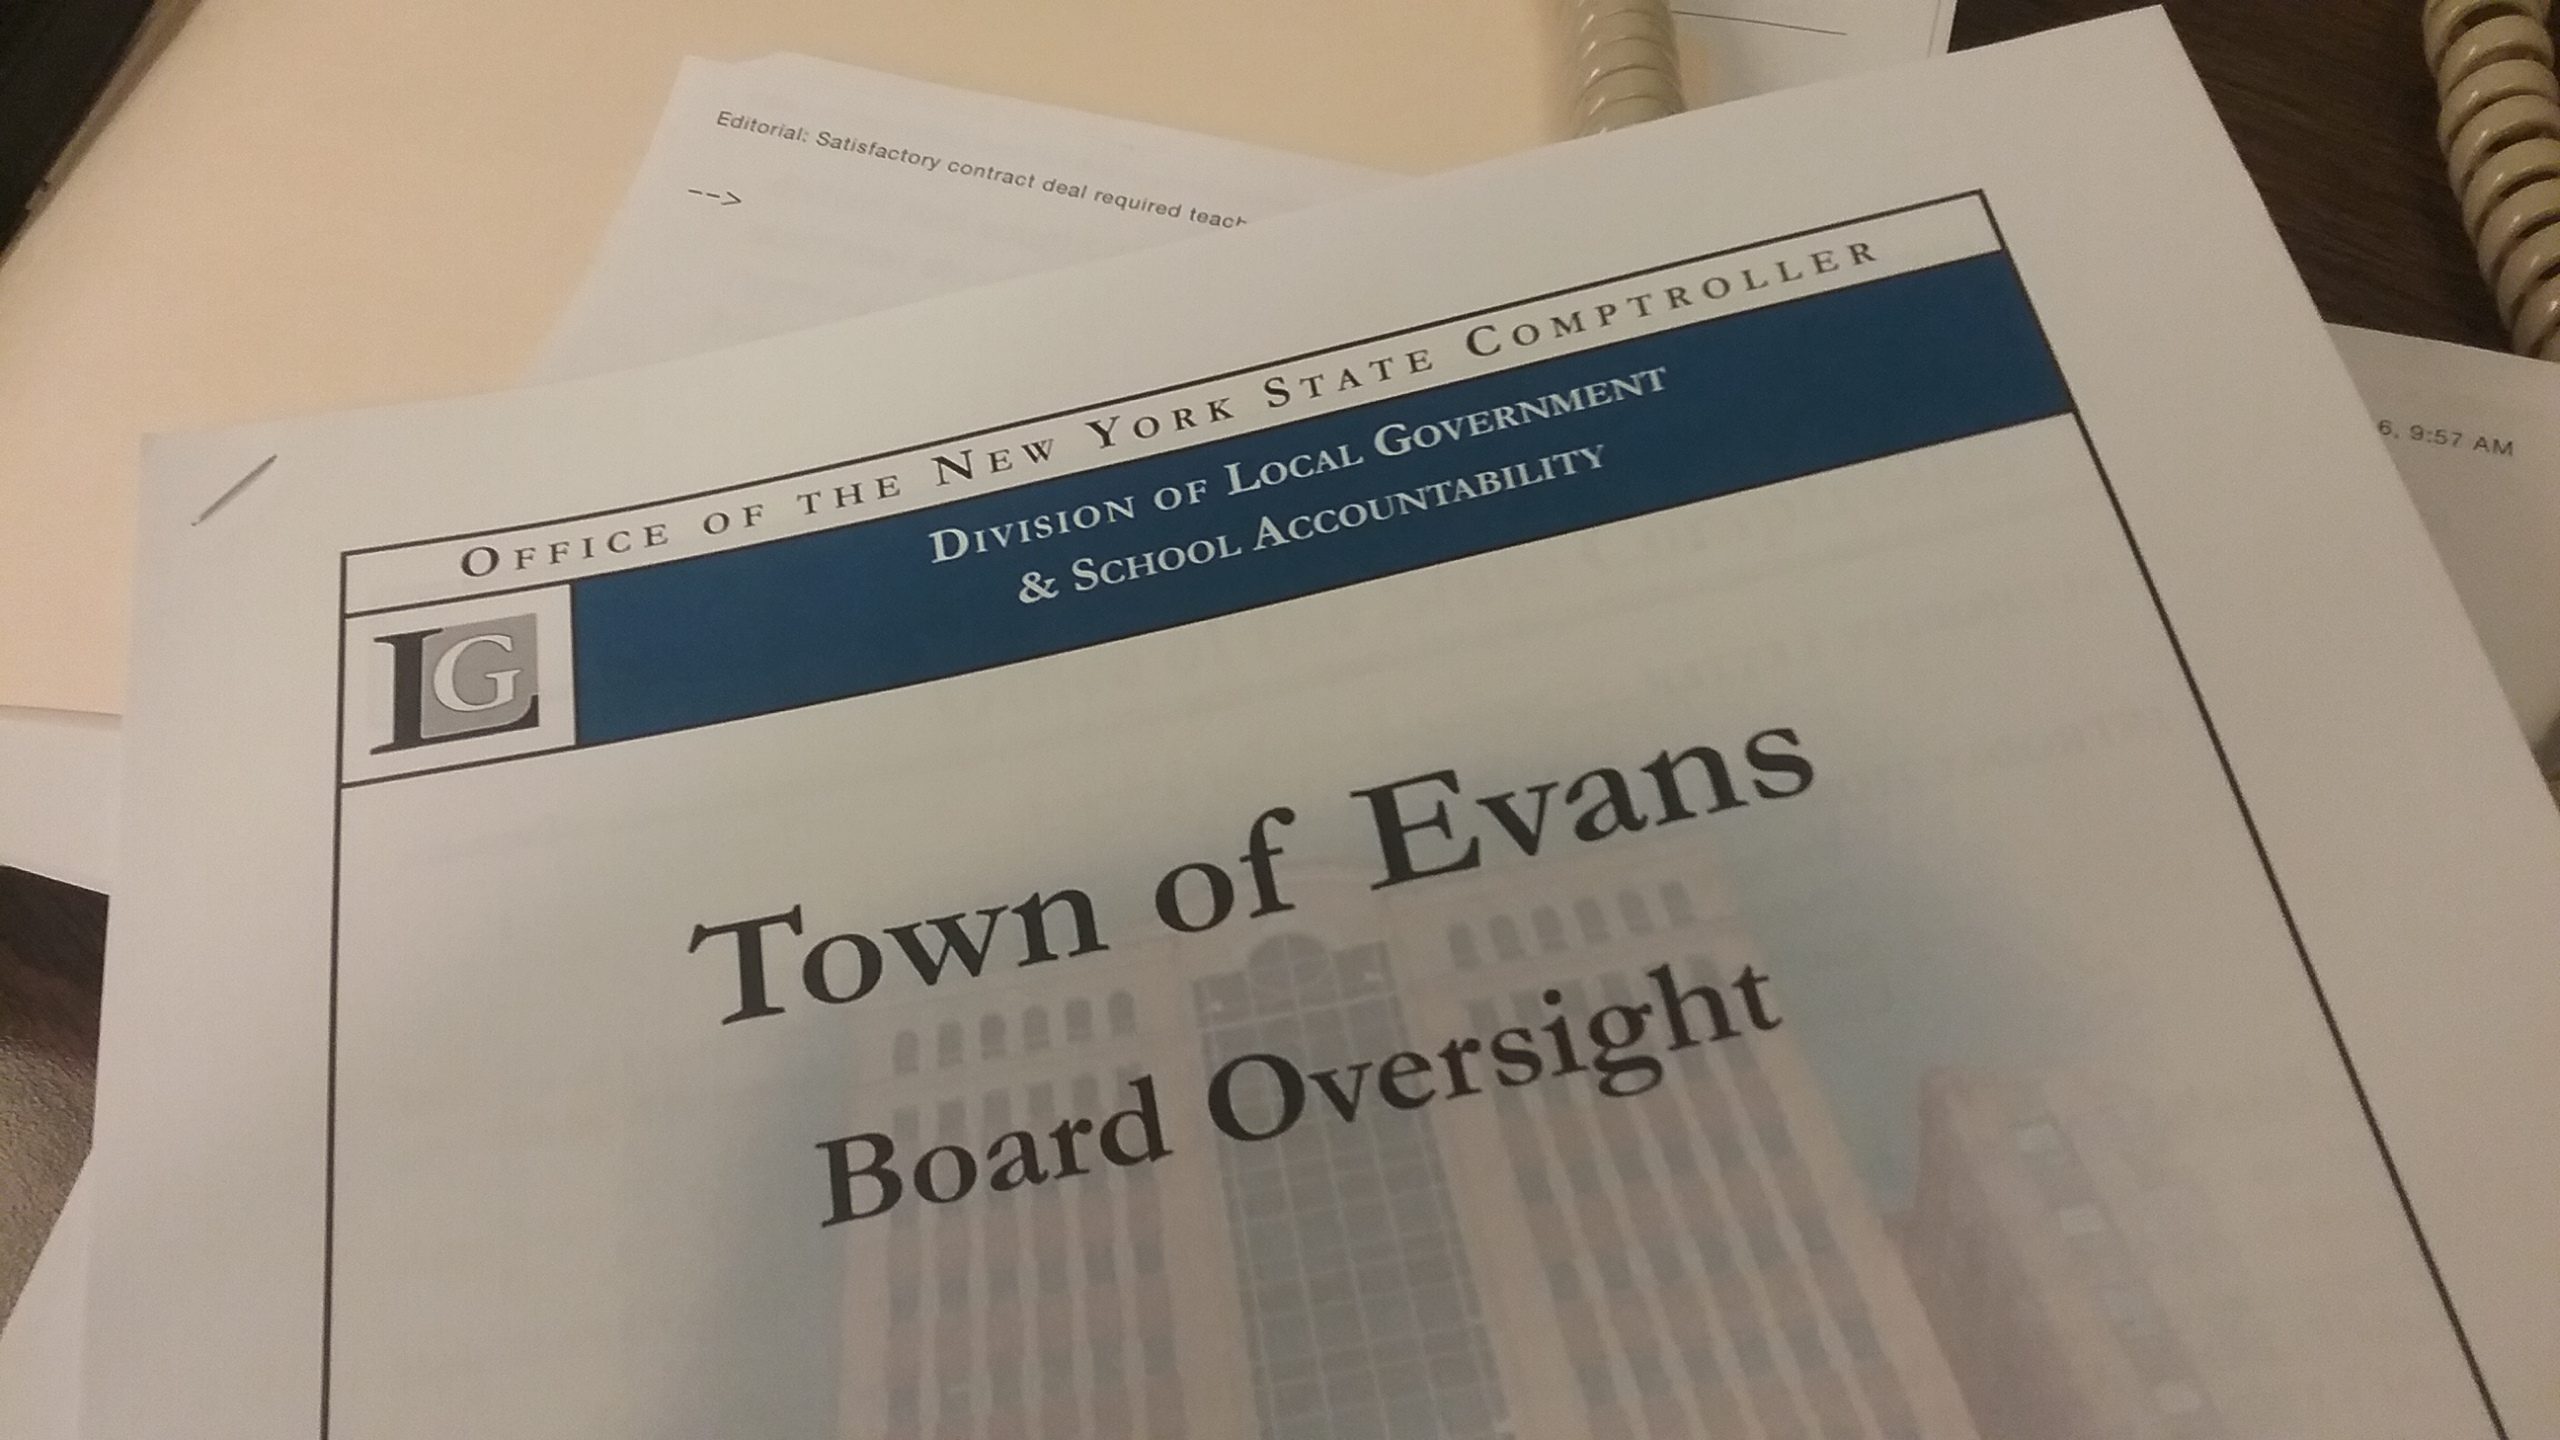 Erie County is making an emergency loan to the Town of Evans, where years of fiscal mismanagement has left it otherwise unable to pay its bills.